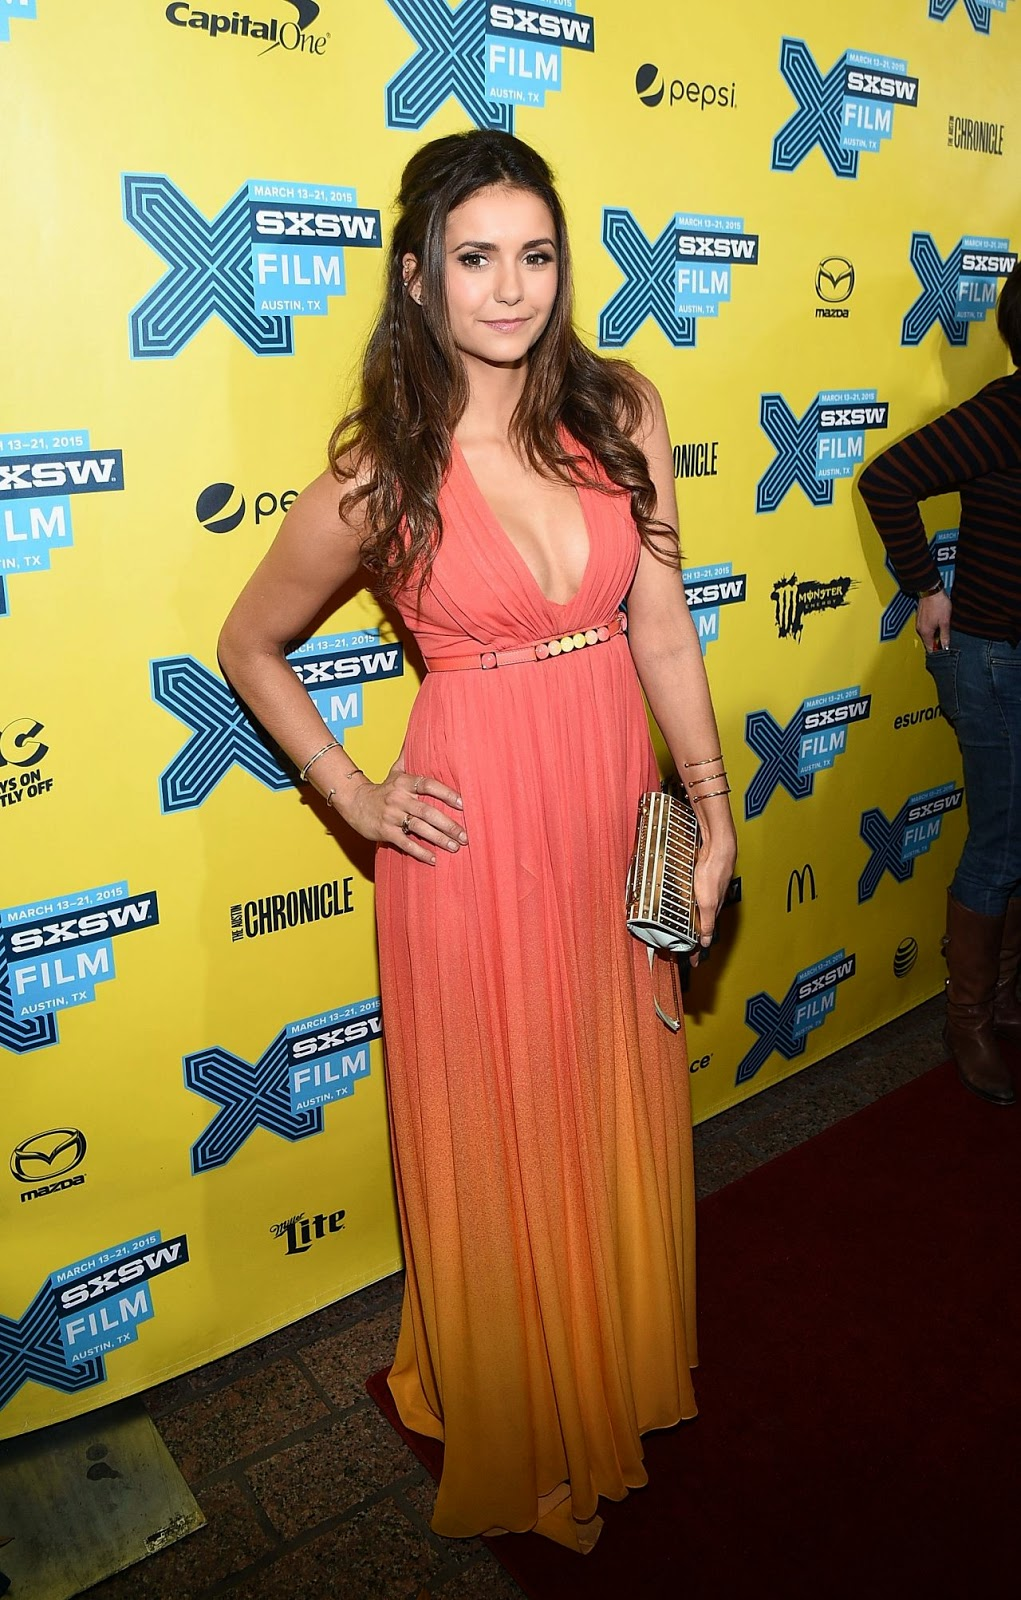 Nina Dobrev flashes cleavage in a plunging gown at 'The Final Girls' premiere at SXSW in Austin